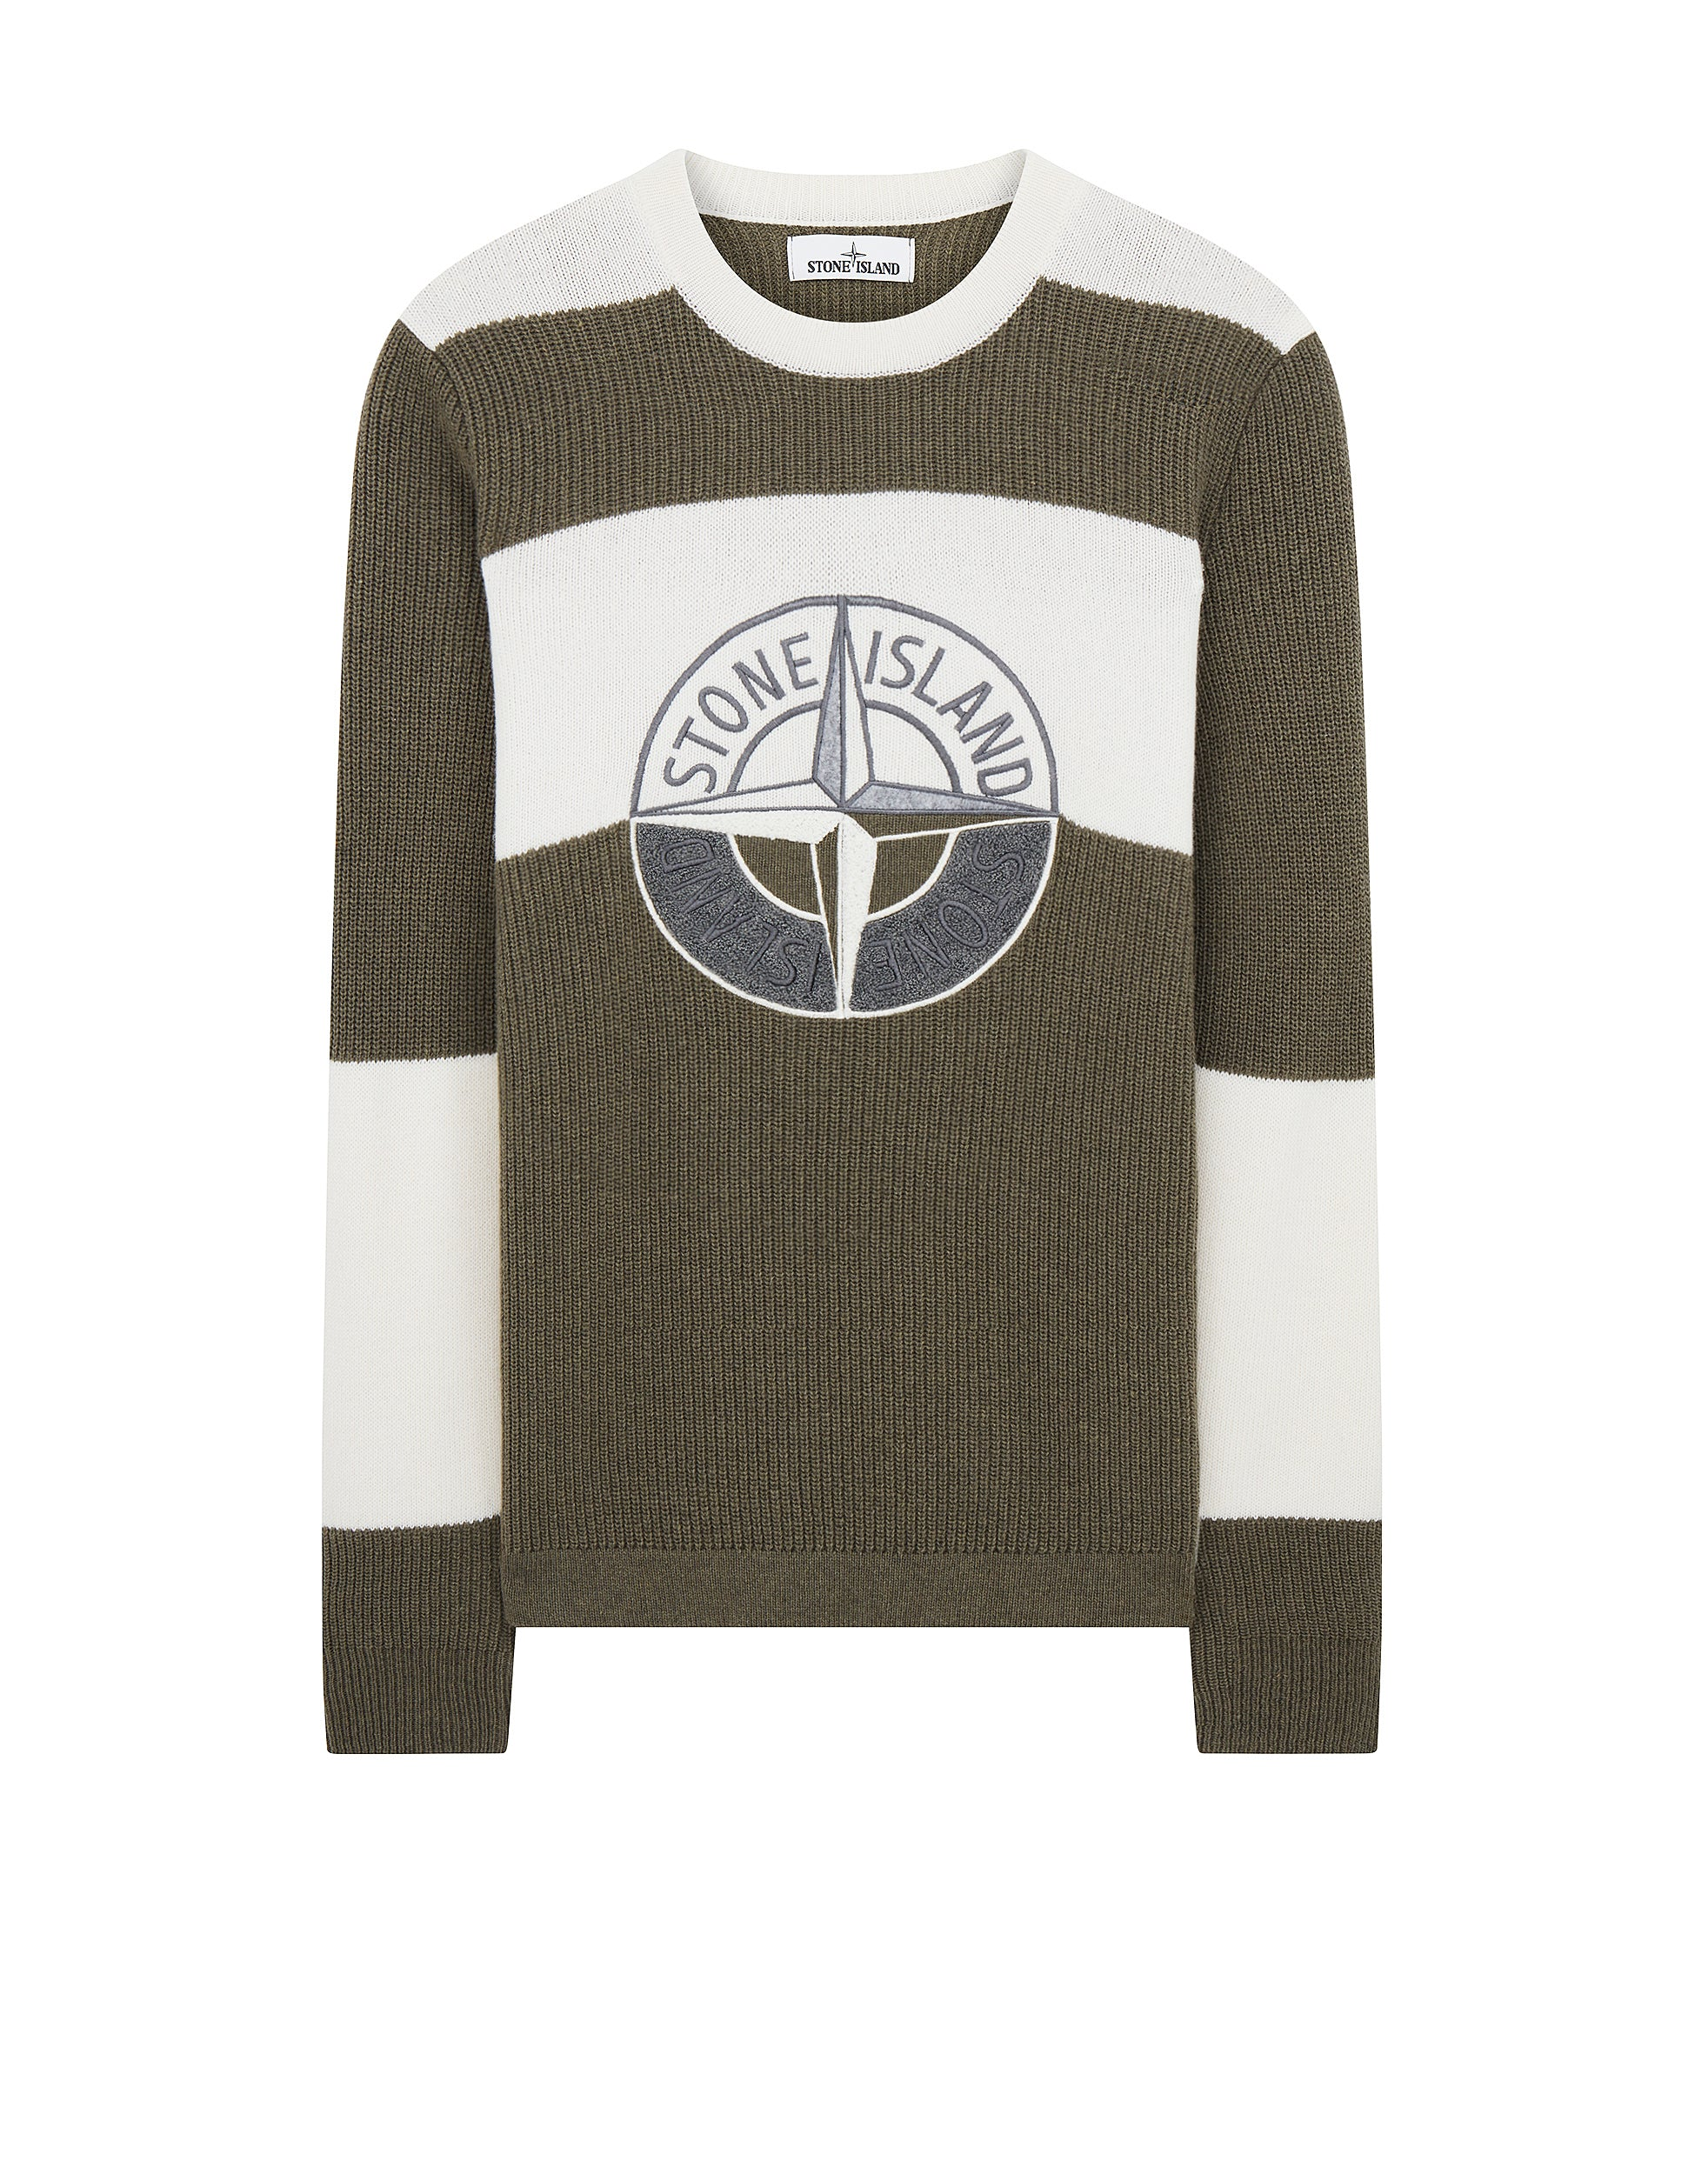 583B7 Crewneck Sweatshirt in Olive